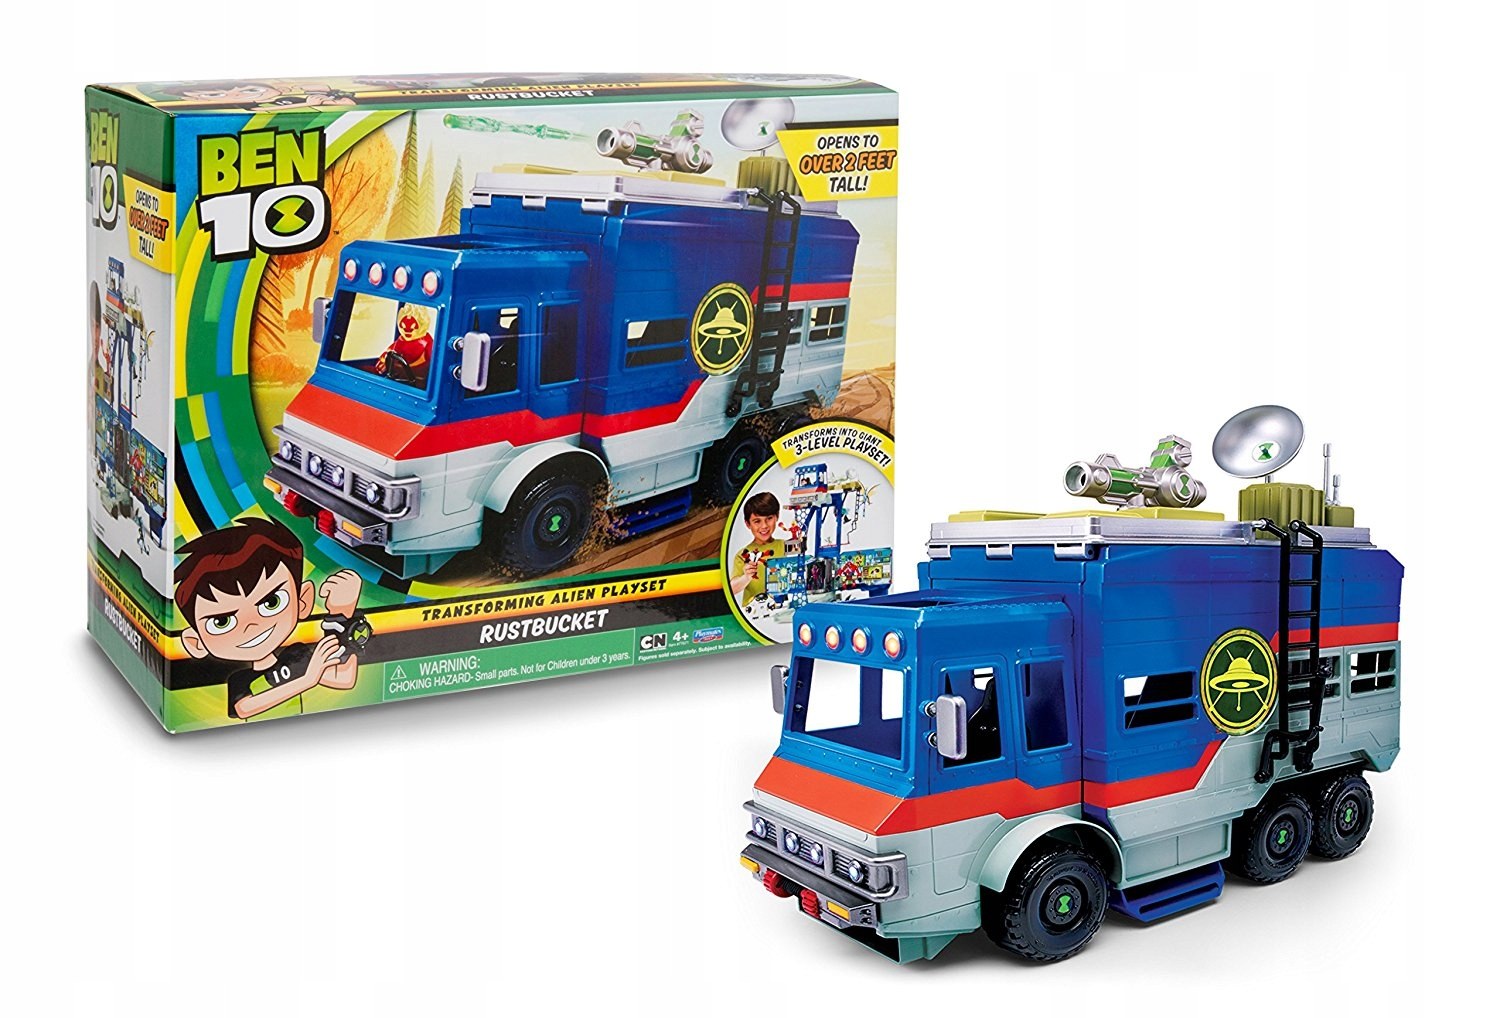 Ben 10 - Rumble Space Transformation Vehicle